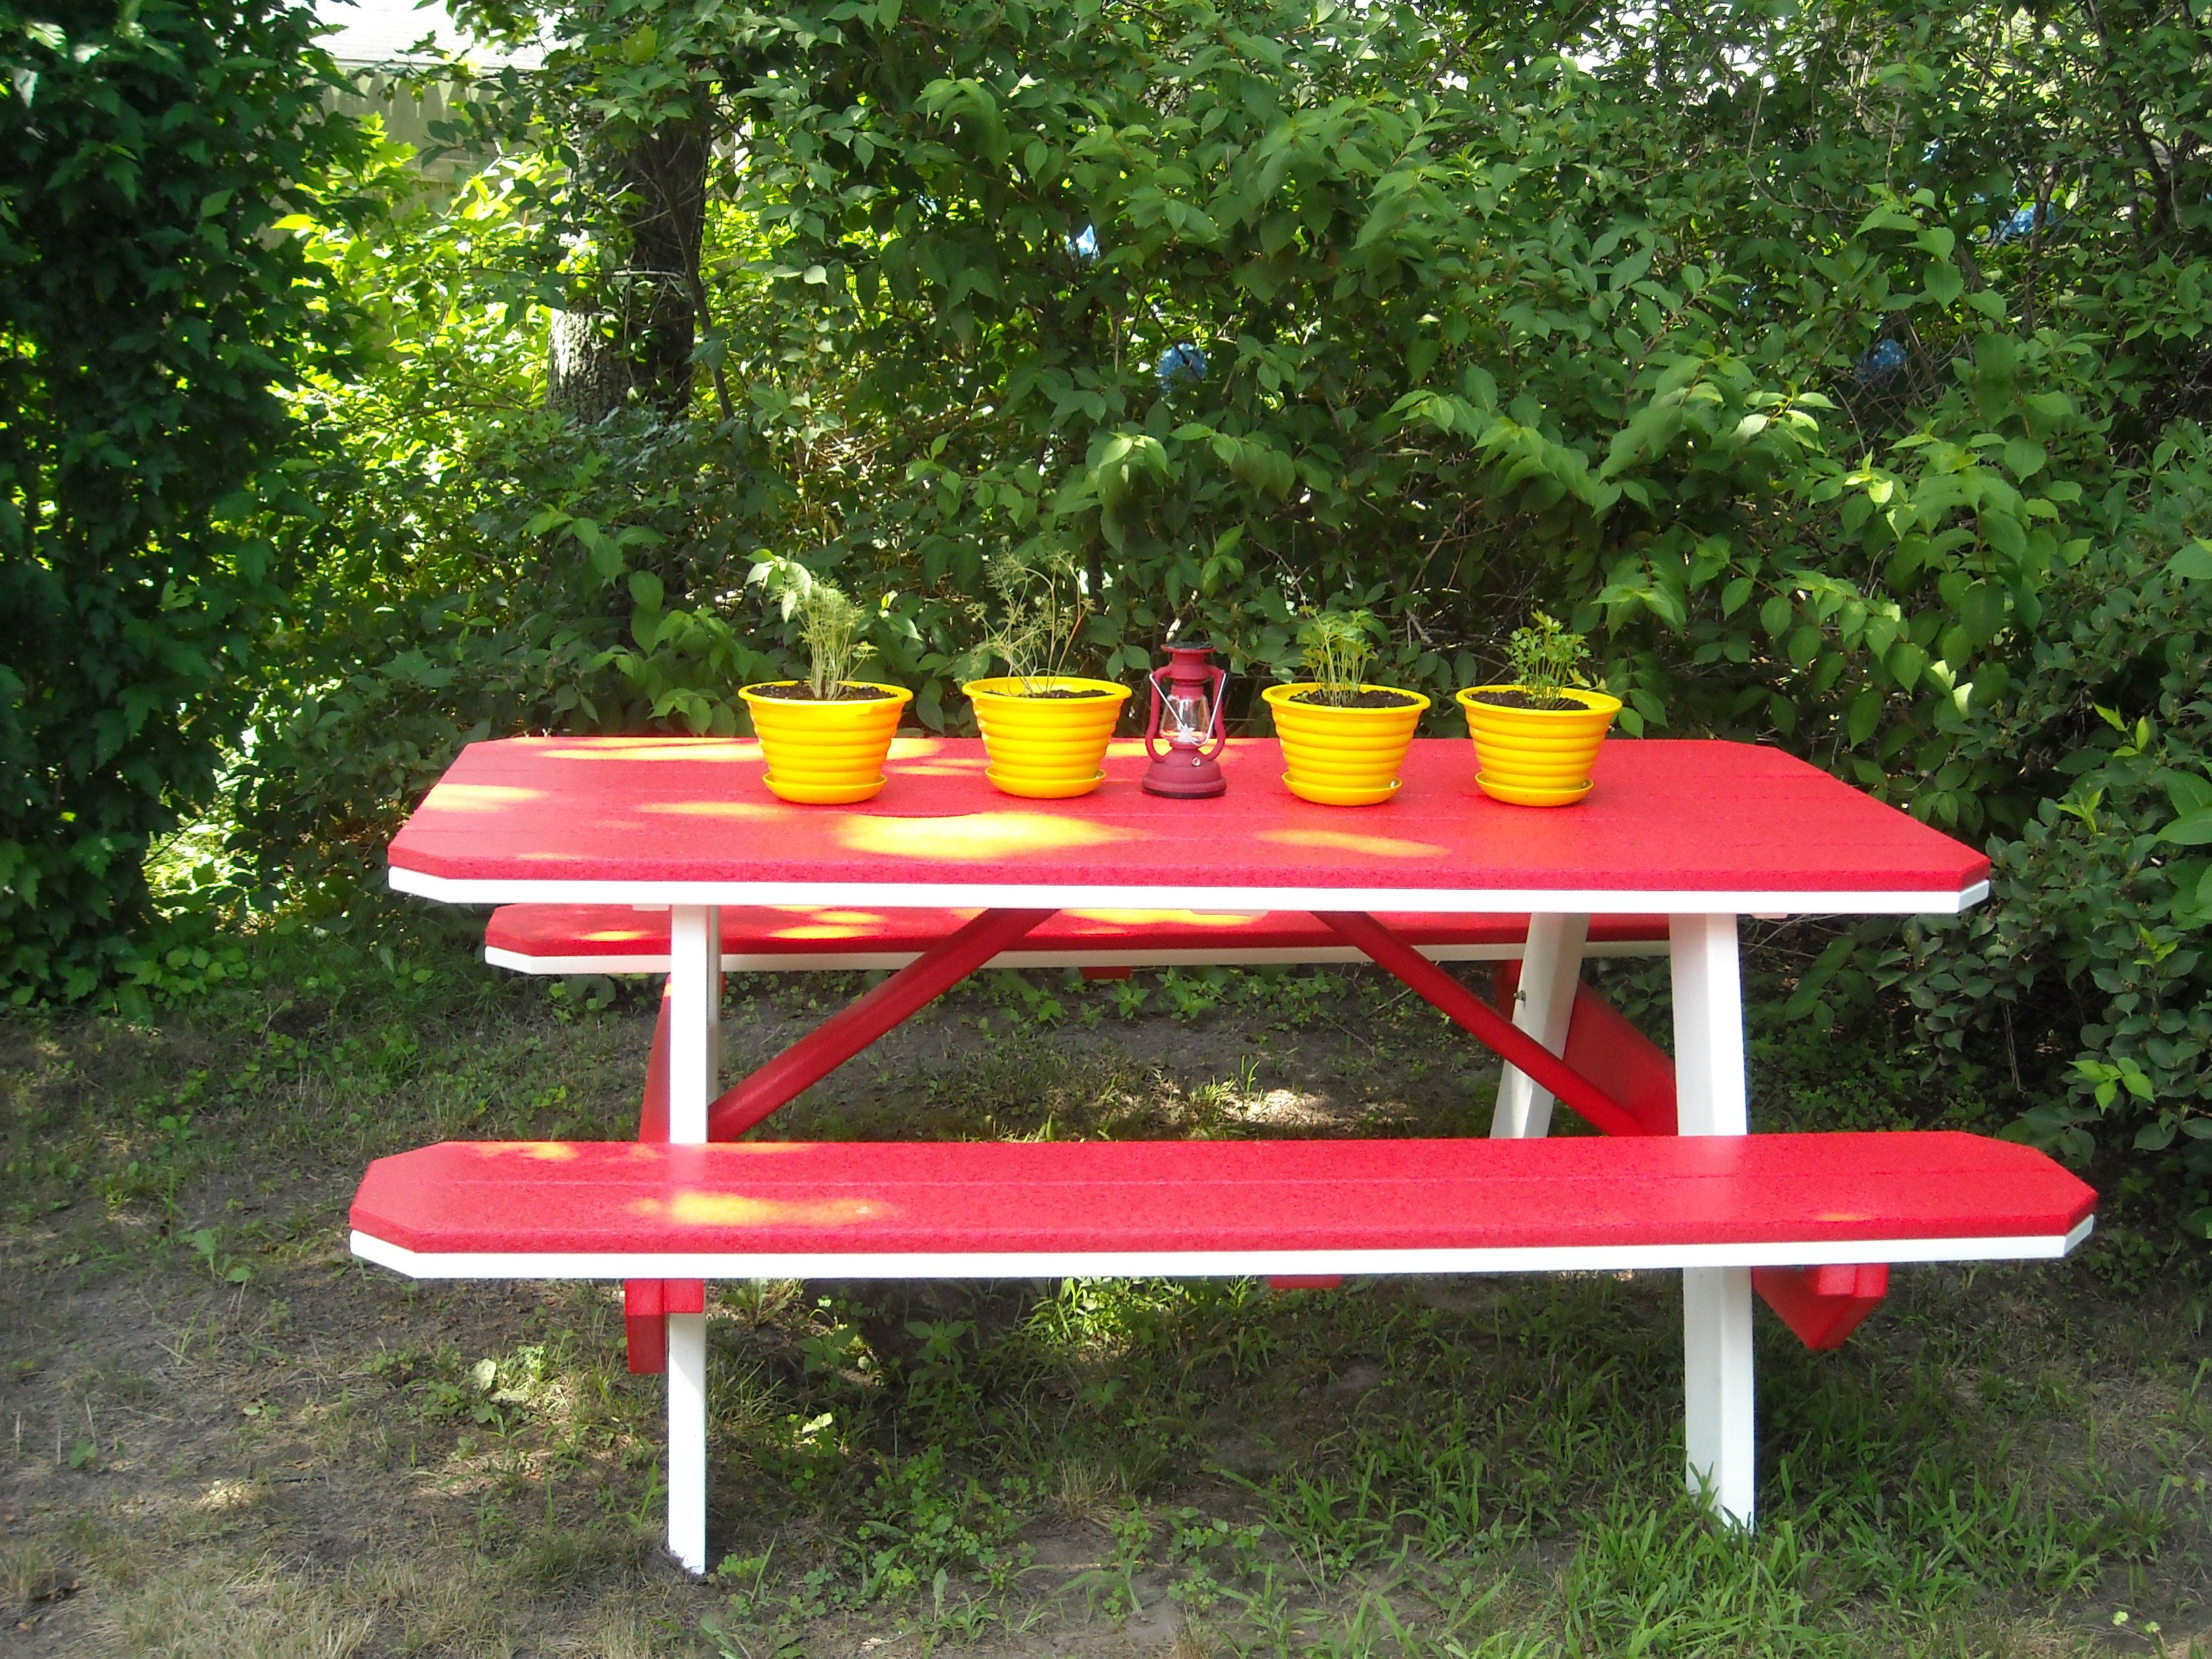 Polywood picnic table and vintage midcentury hard plastic planters